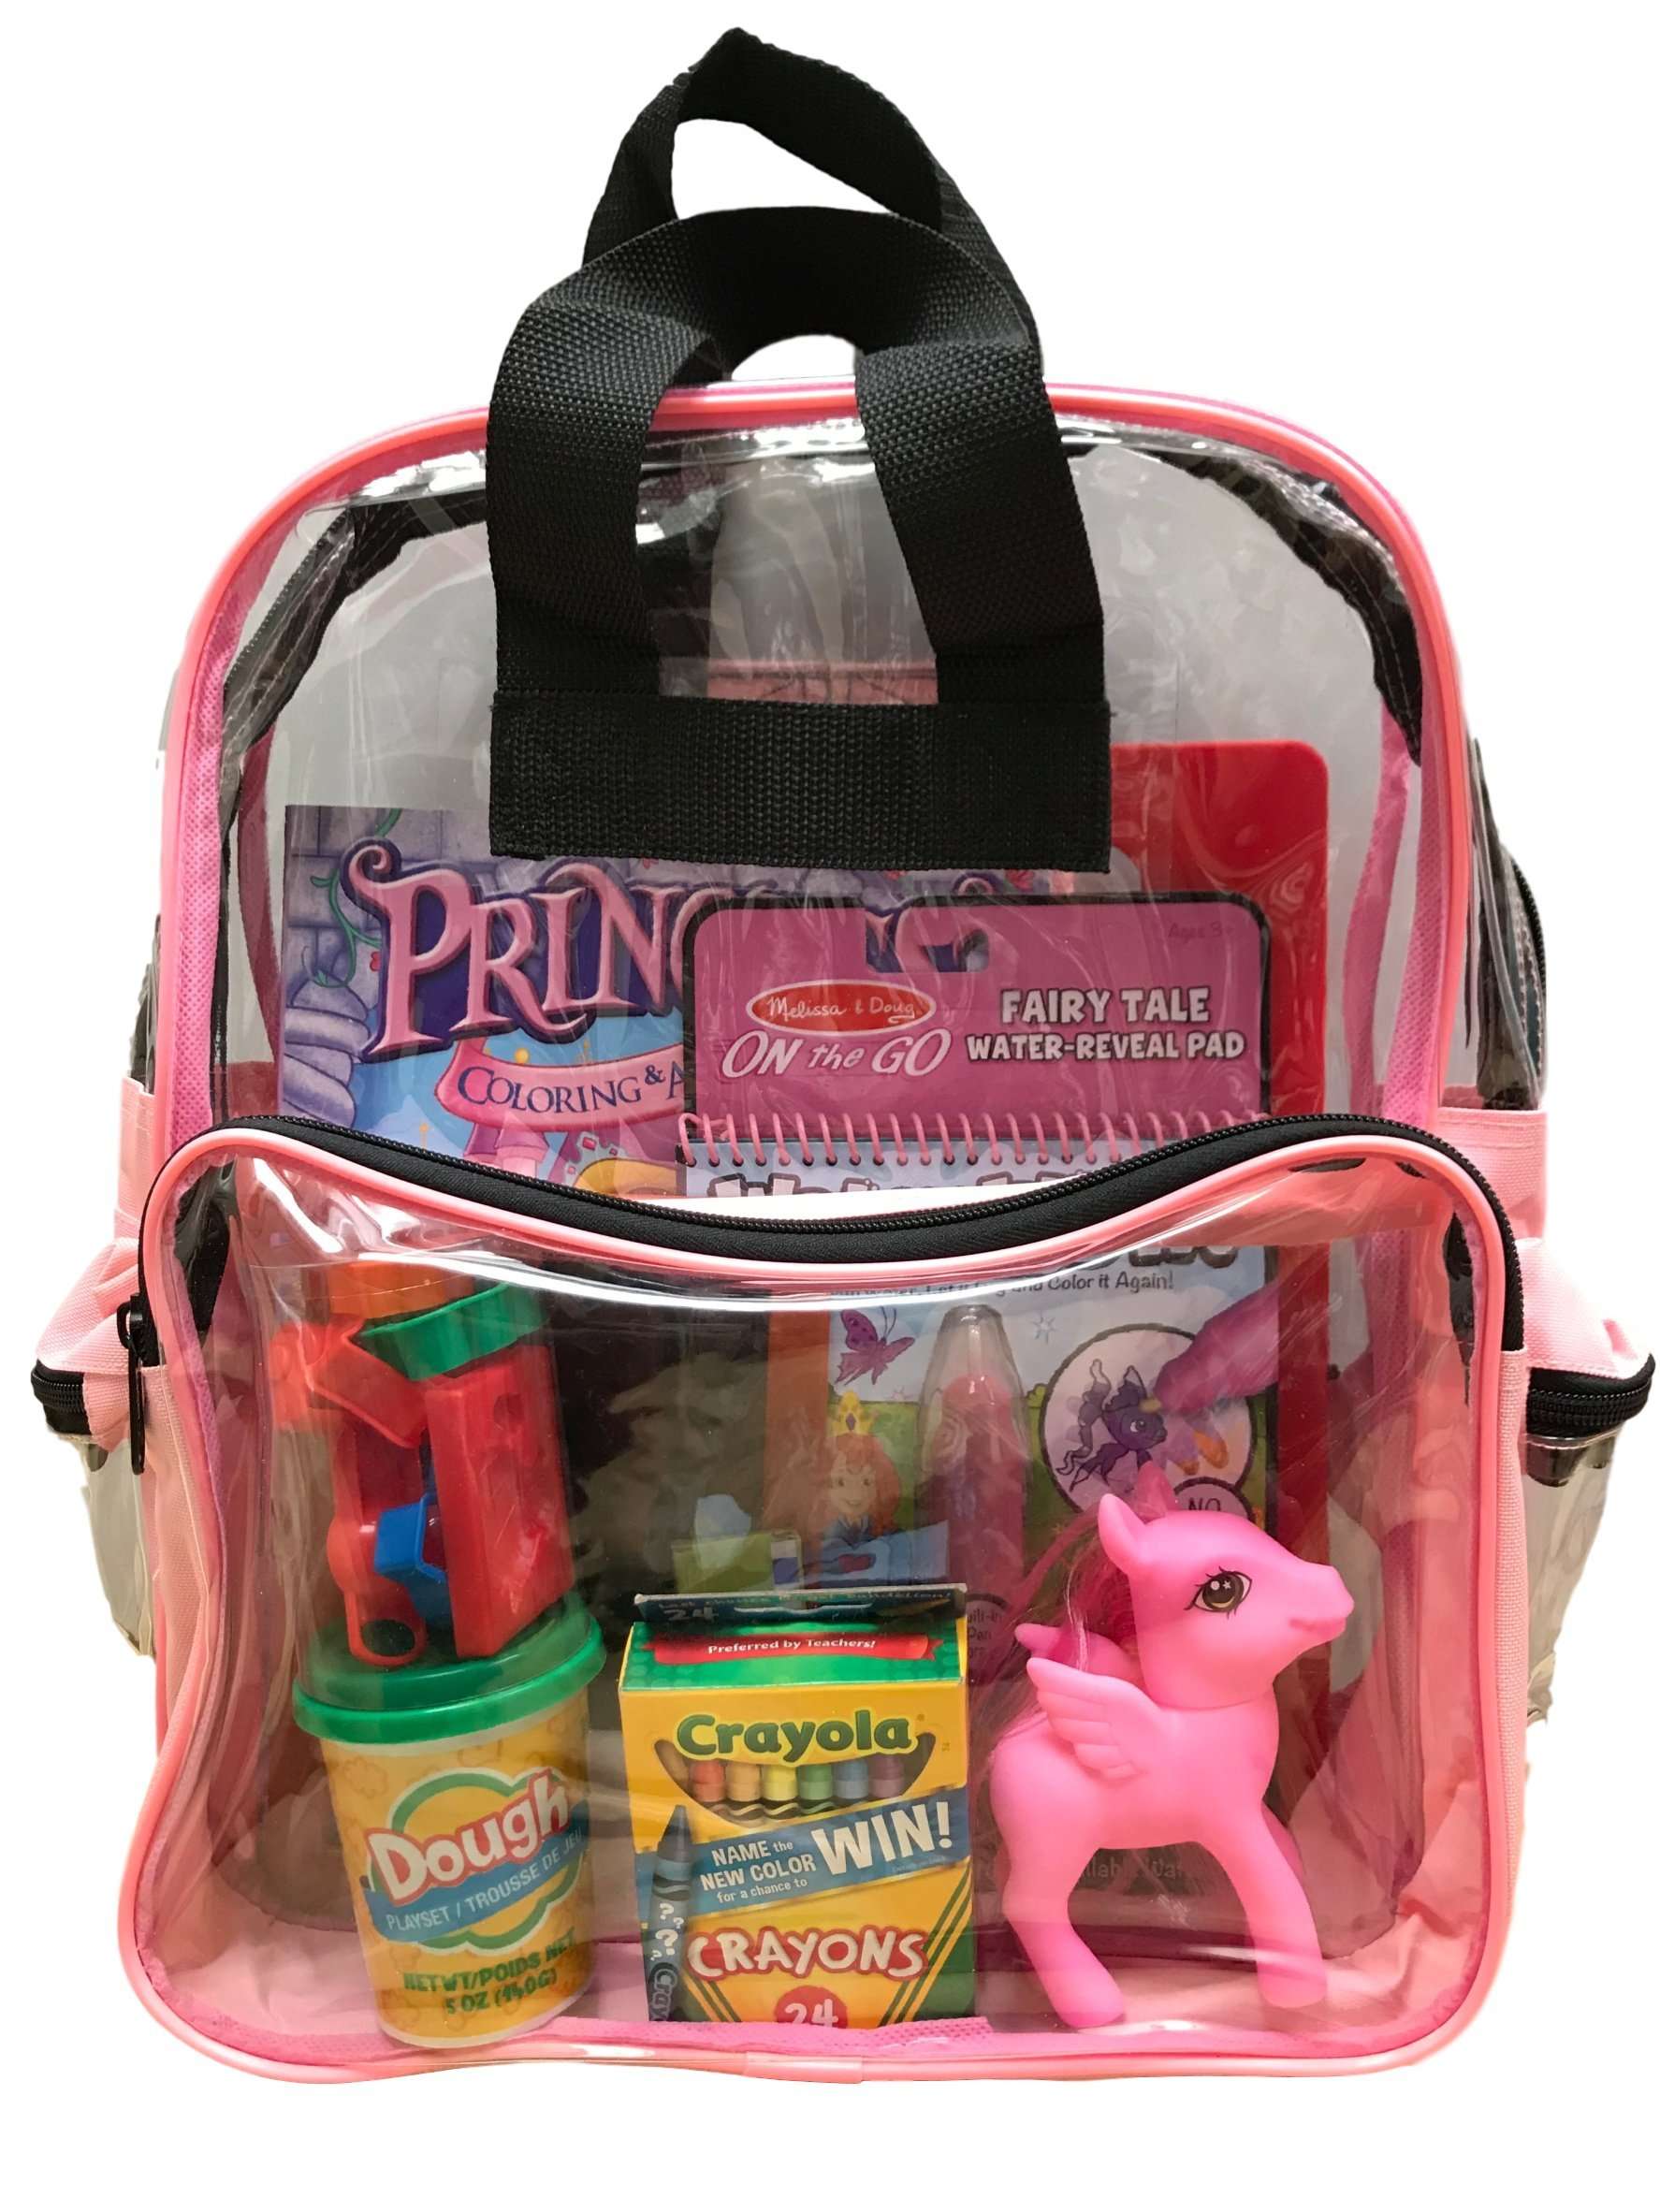 BusyBags - Activity Travel Bags Kids - Hours Quiet Activities - Durable See Through Backpack - Keep Your Kids Busy on Airplanes, roadtrips, Waiting at restuarants, etc. - Girls